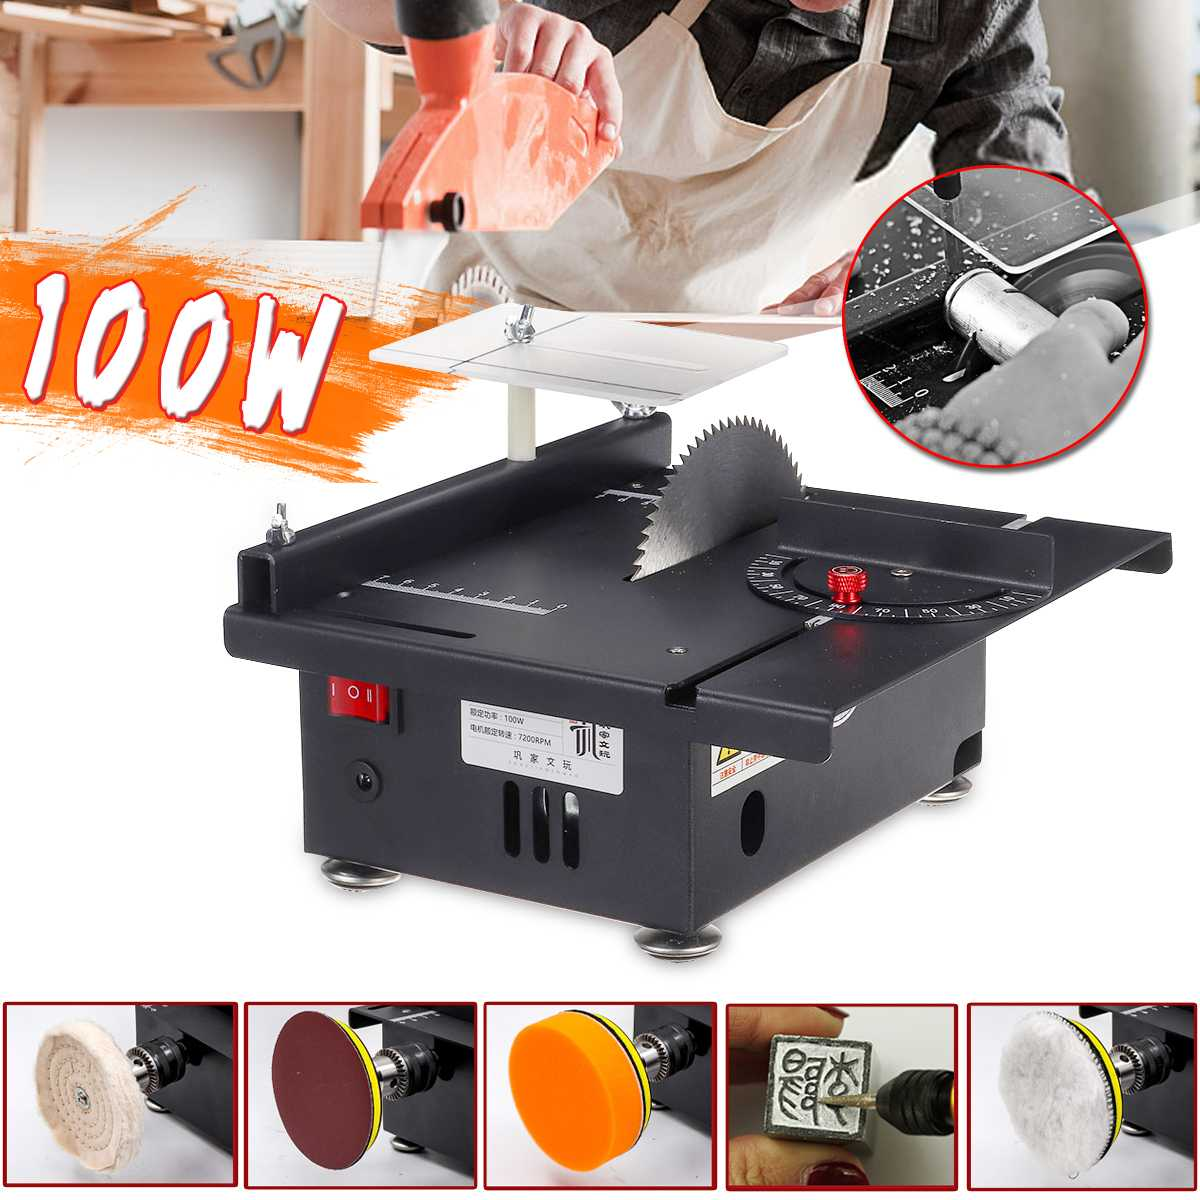 Mini Electric Table Saw Woodworking Bench Saw Grinder Handmade Hobby Model Crafts Cutting Tool with Power Circular Saw Blade